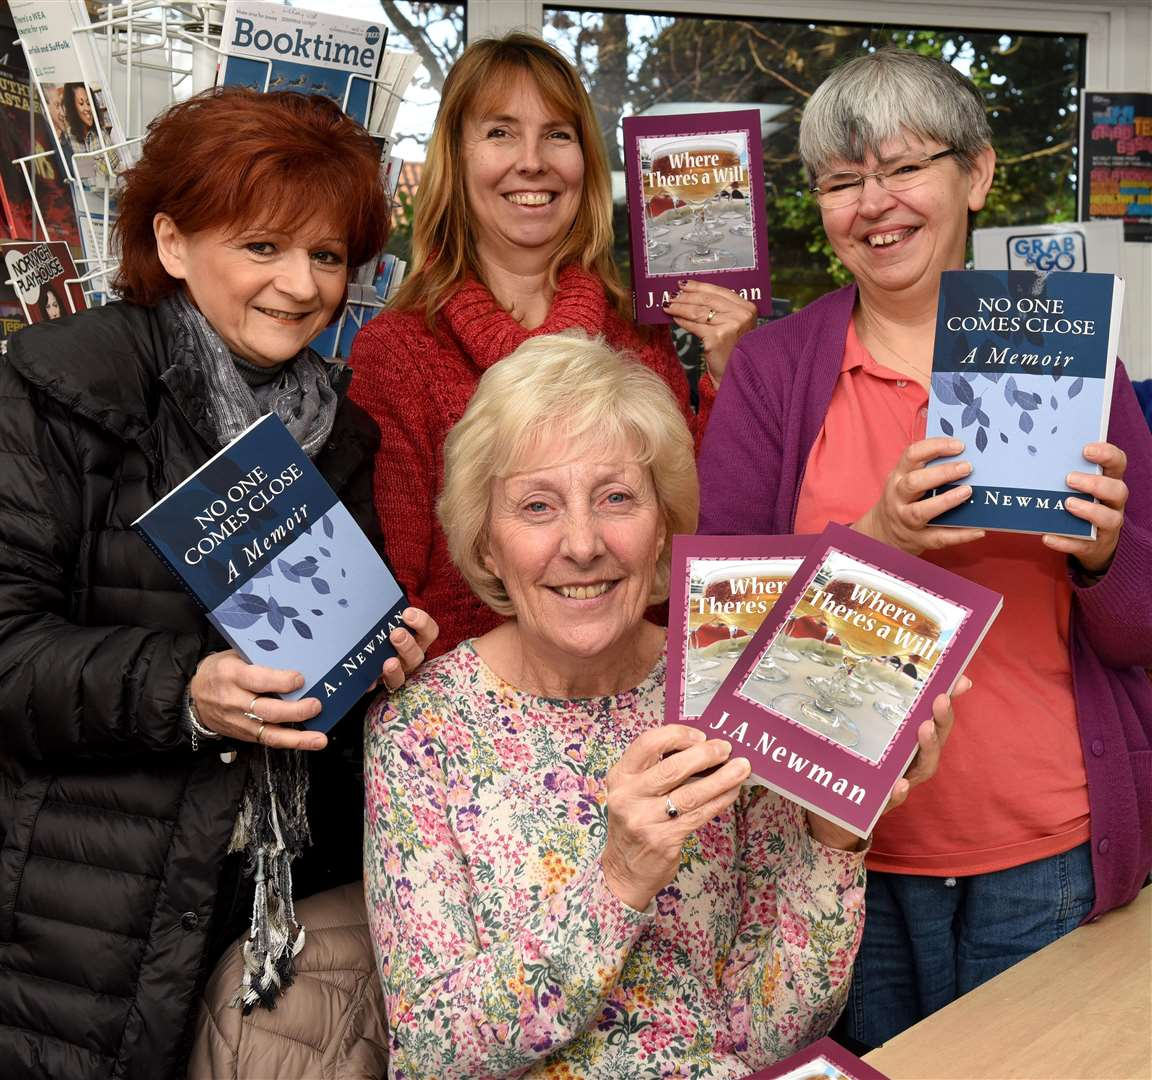 Local Author J.A.Newman will be talking about her writing journey and how she created her debut novel 'WHERE THERE'S A WILL' the event was held at Downham Market Library, ..Author Julie Newman (front centre), with guests at the event, LtoR, Ali Carter, Jo Moss, Lynne Hubbard.. (5944788)